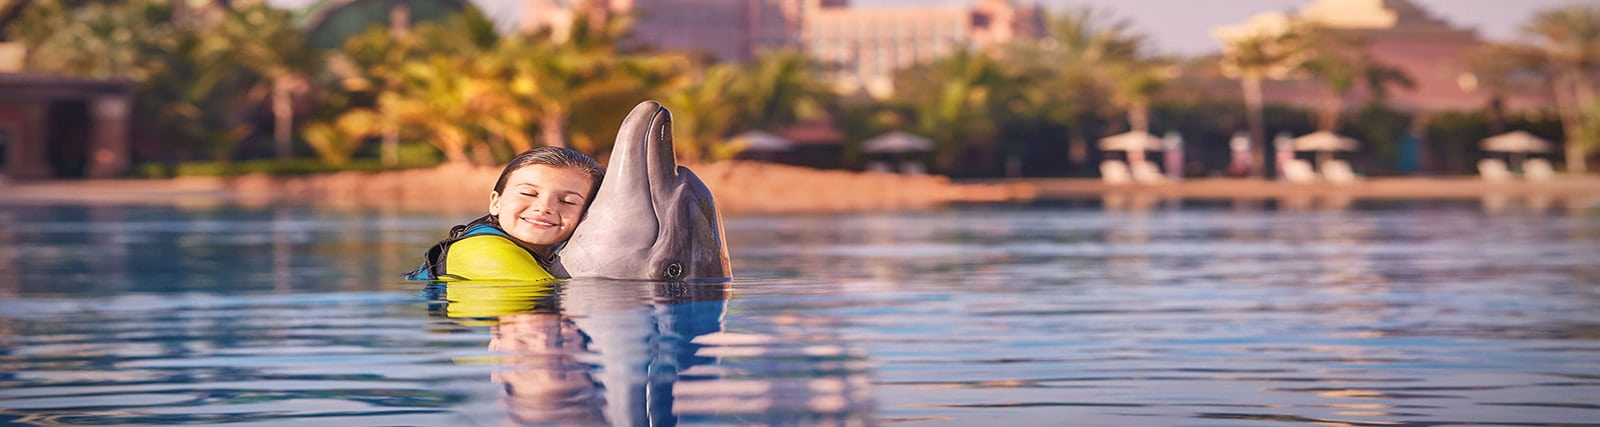 dolphin photo fun